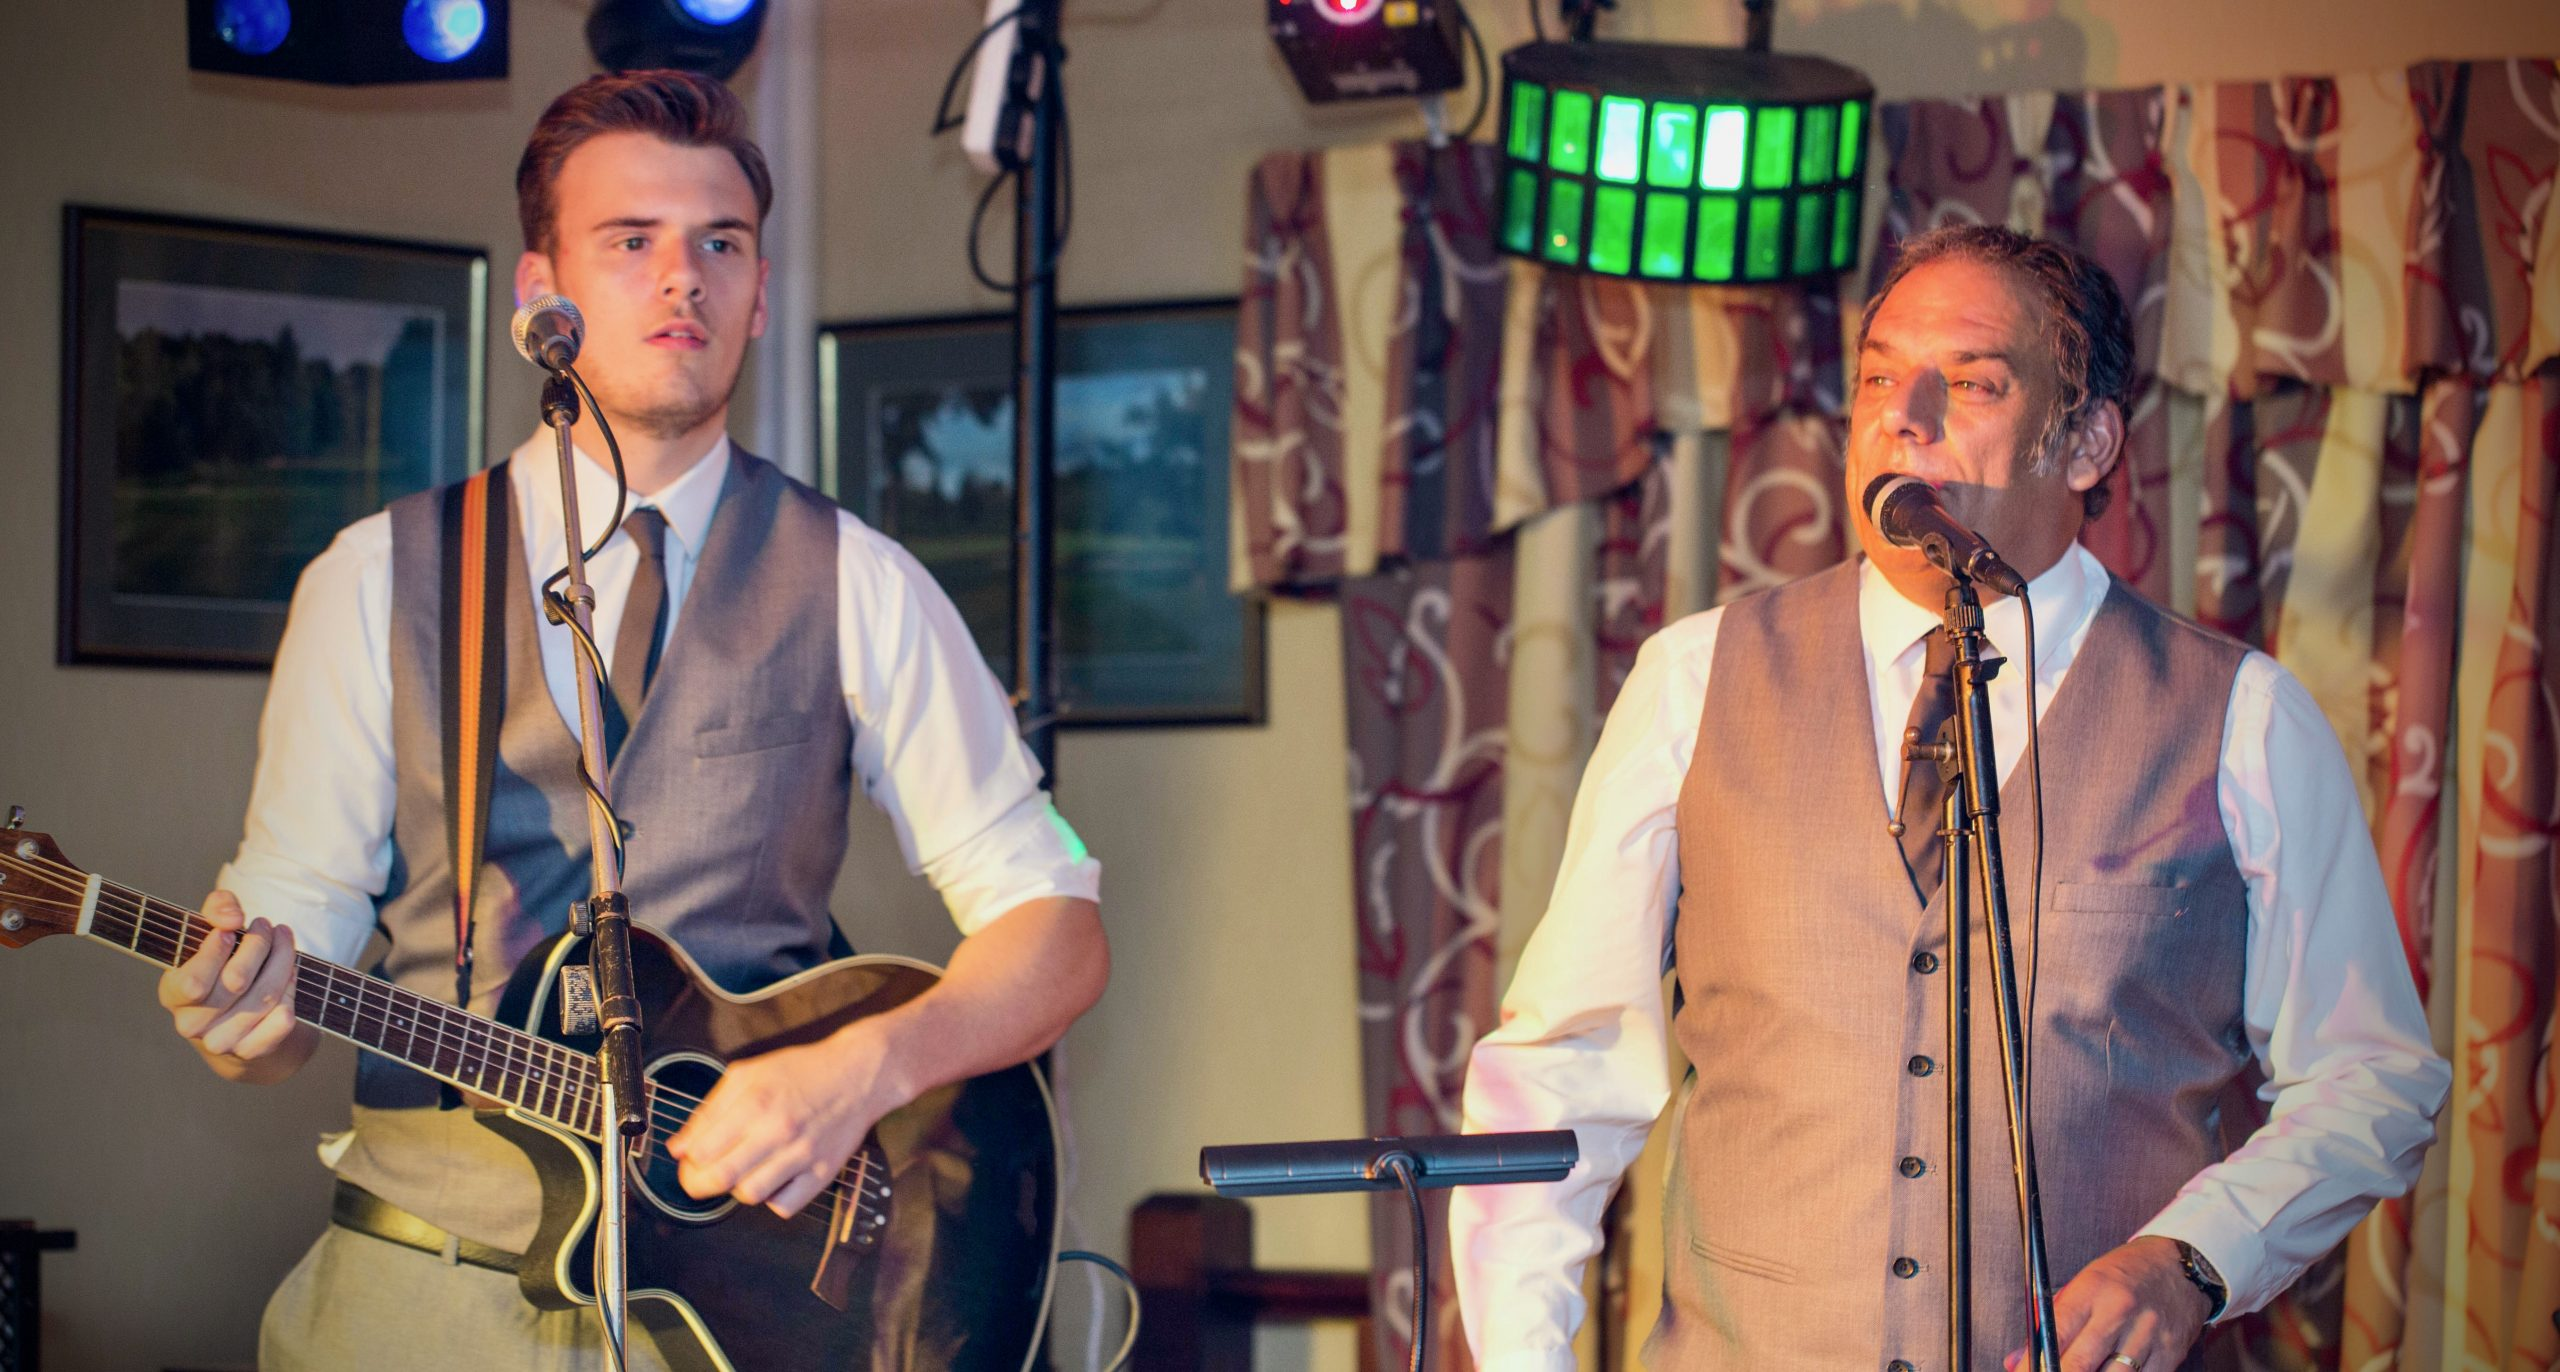 Acoustic Duo Eastbound and Down on stage singing into microphones dressed in white shirts, dark tie and grey waistcoats Jack is playing a guitar